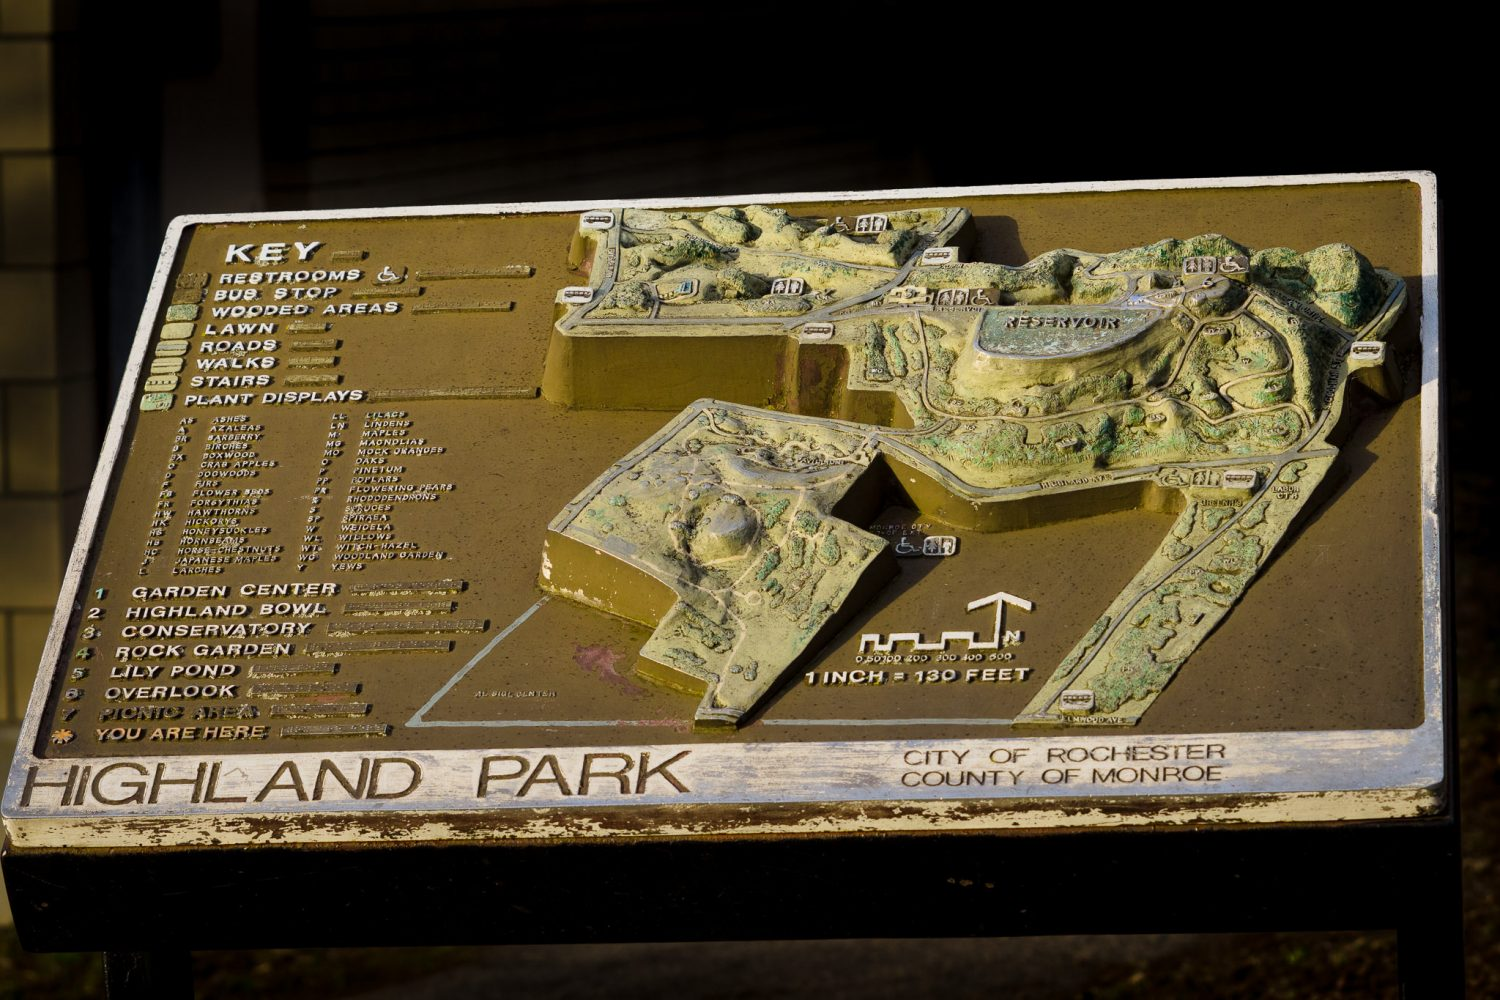 A map of Highland Park in Rochester, NY.